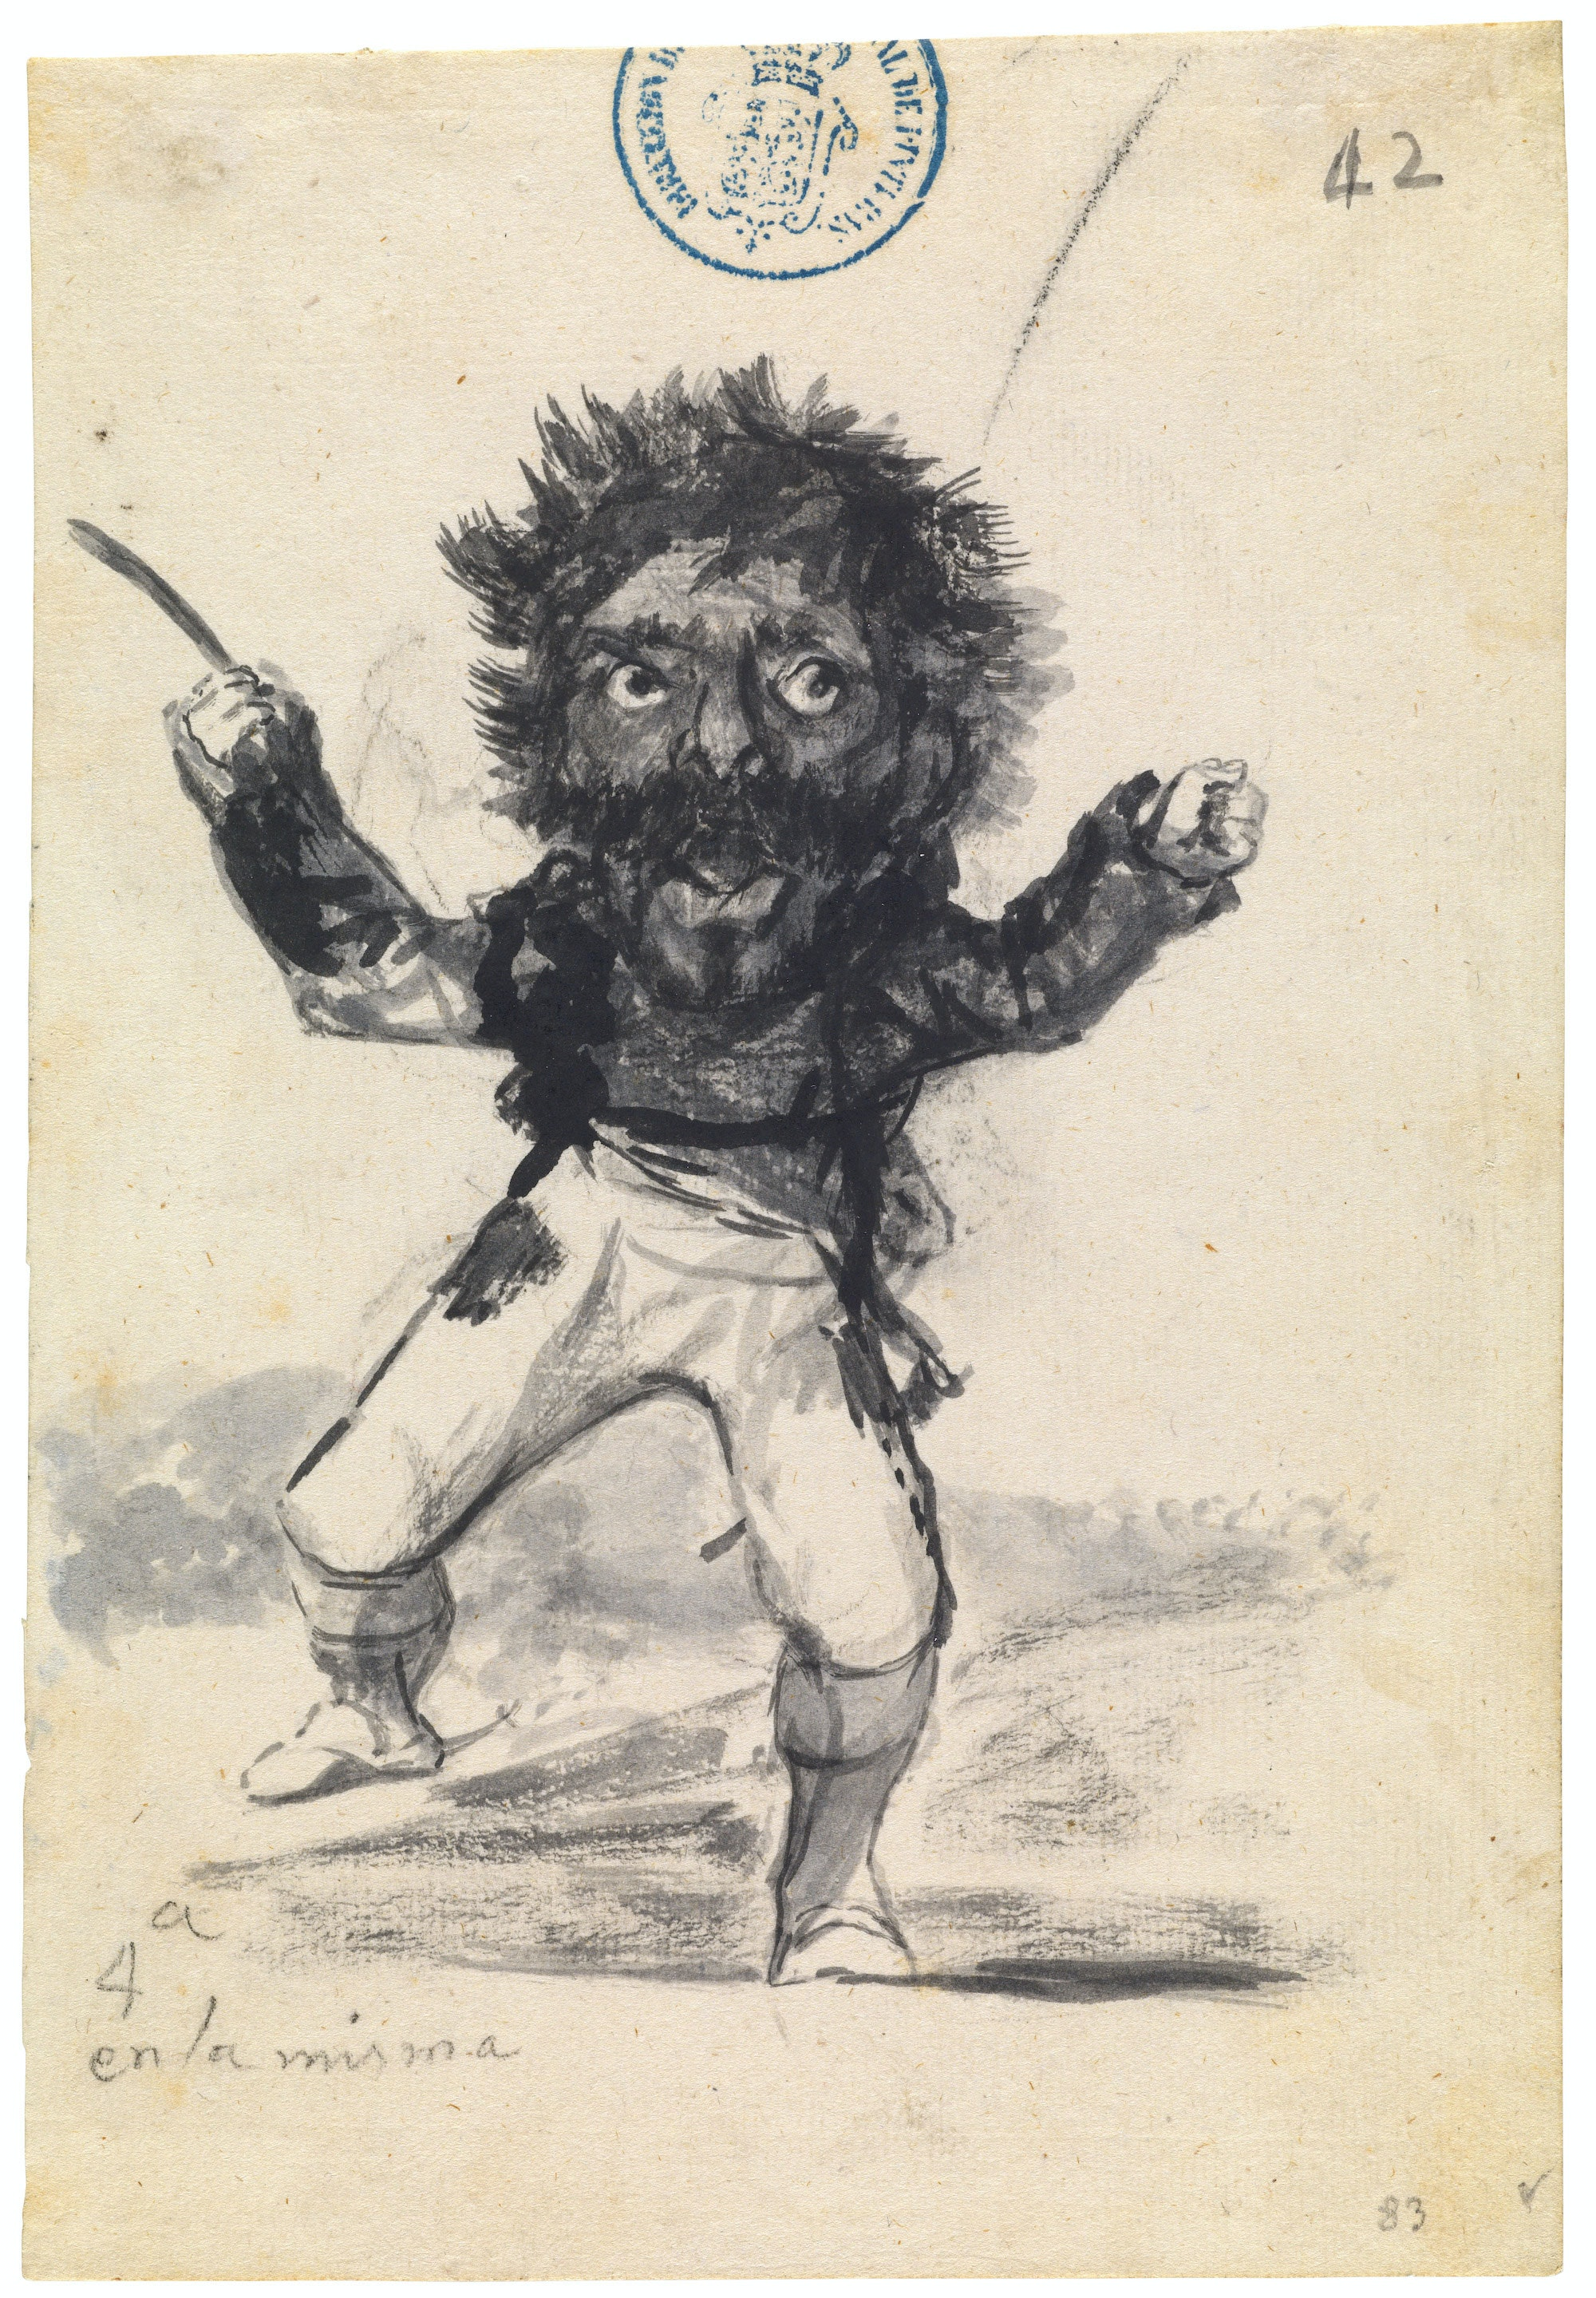 Francisco de Goya y Lucientes, <em>4th vision in the same night</em>, ca. 1808–14. Brush, wash, carbon black ink, traces of black chalk, on laid paper, 8 1/16 × 5 9/16 inches. Courtesy The Metropolitan Museum of Art, New York and Museo Nacional del Prado, Madrid.